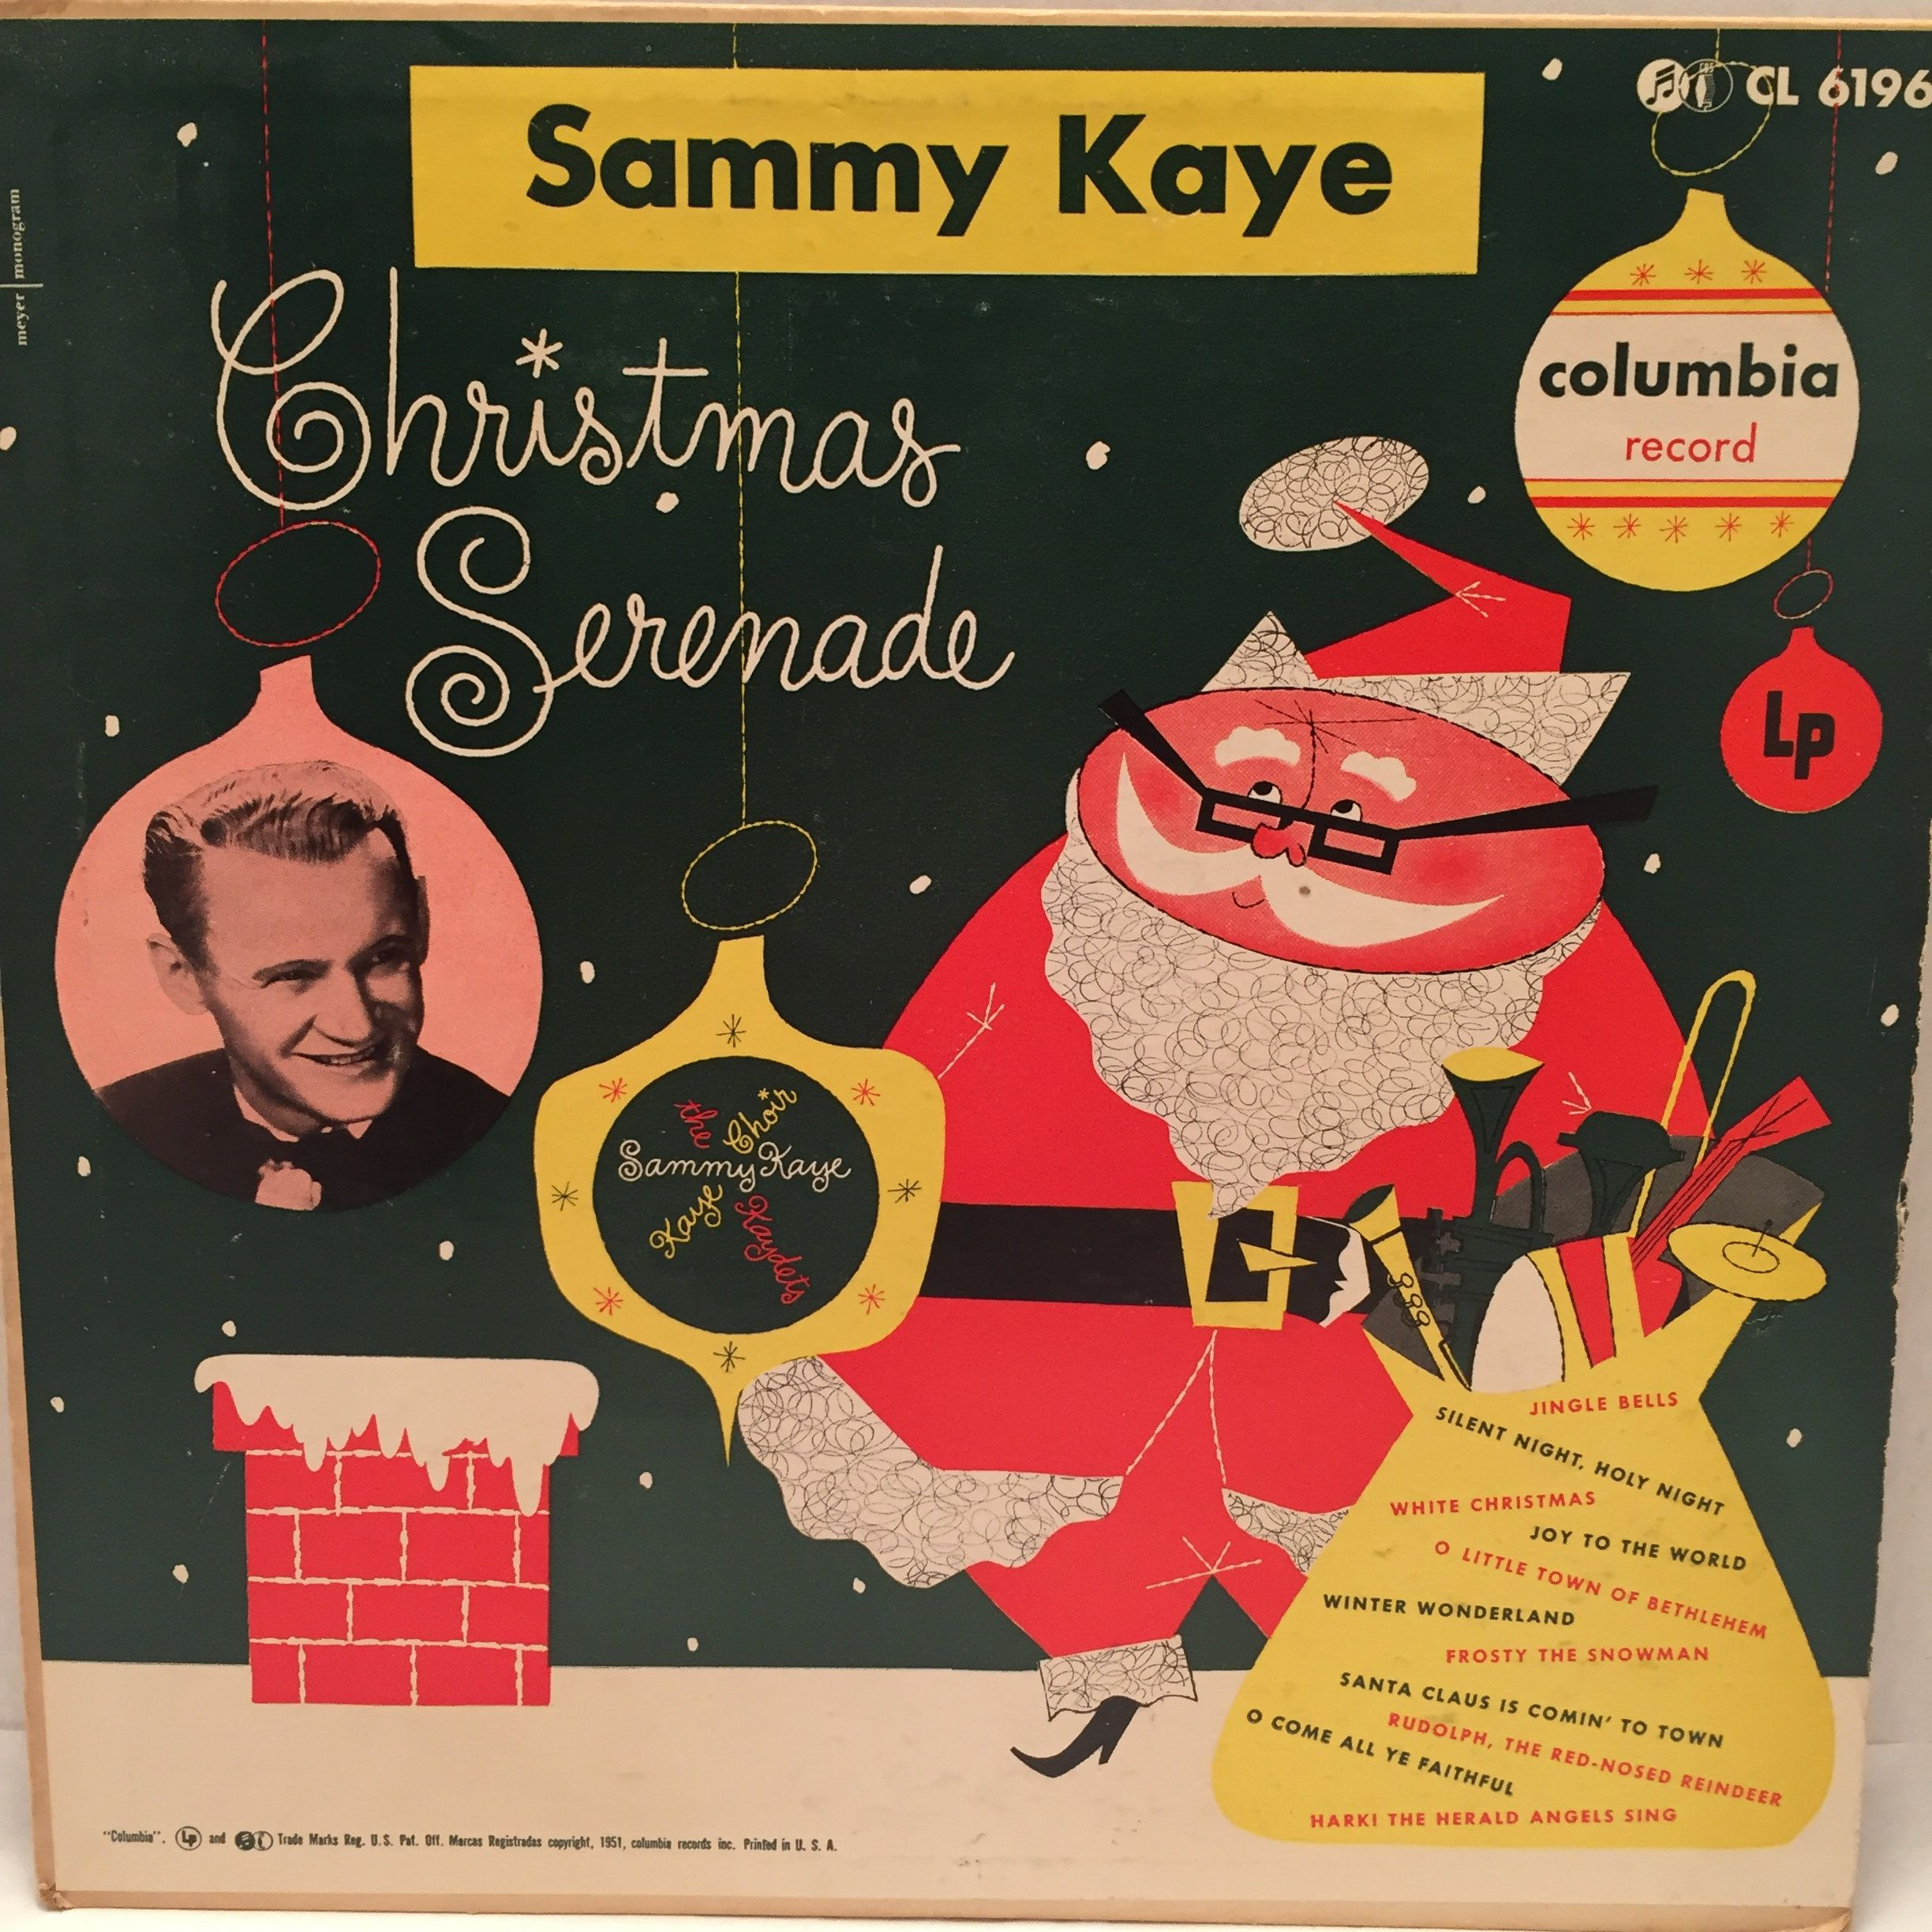 Sammy Kaye Christmas Serenade 1951 10 Vinyl Lp Columbia Record Cl 6196 Rare Vintage Collectible Album By Jackiesvin Vintage Christmas Vinyl Sales Silent Night